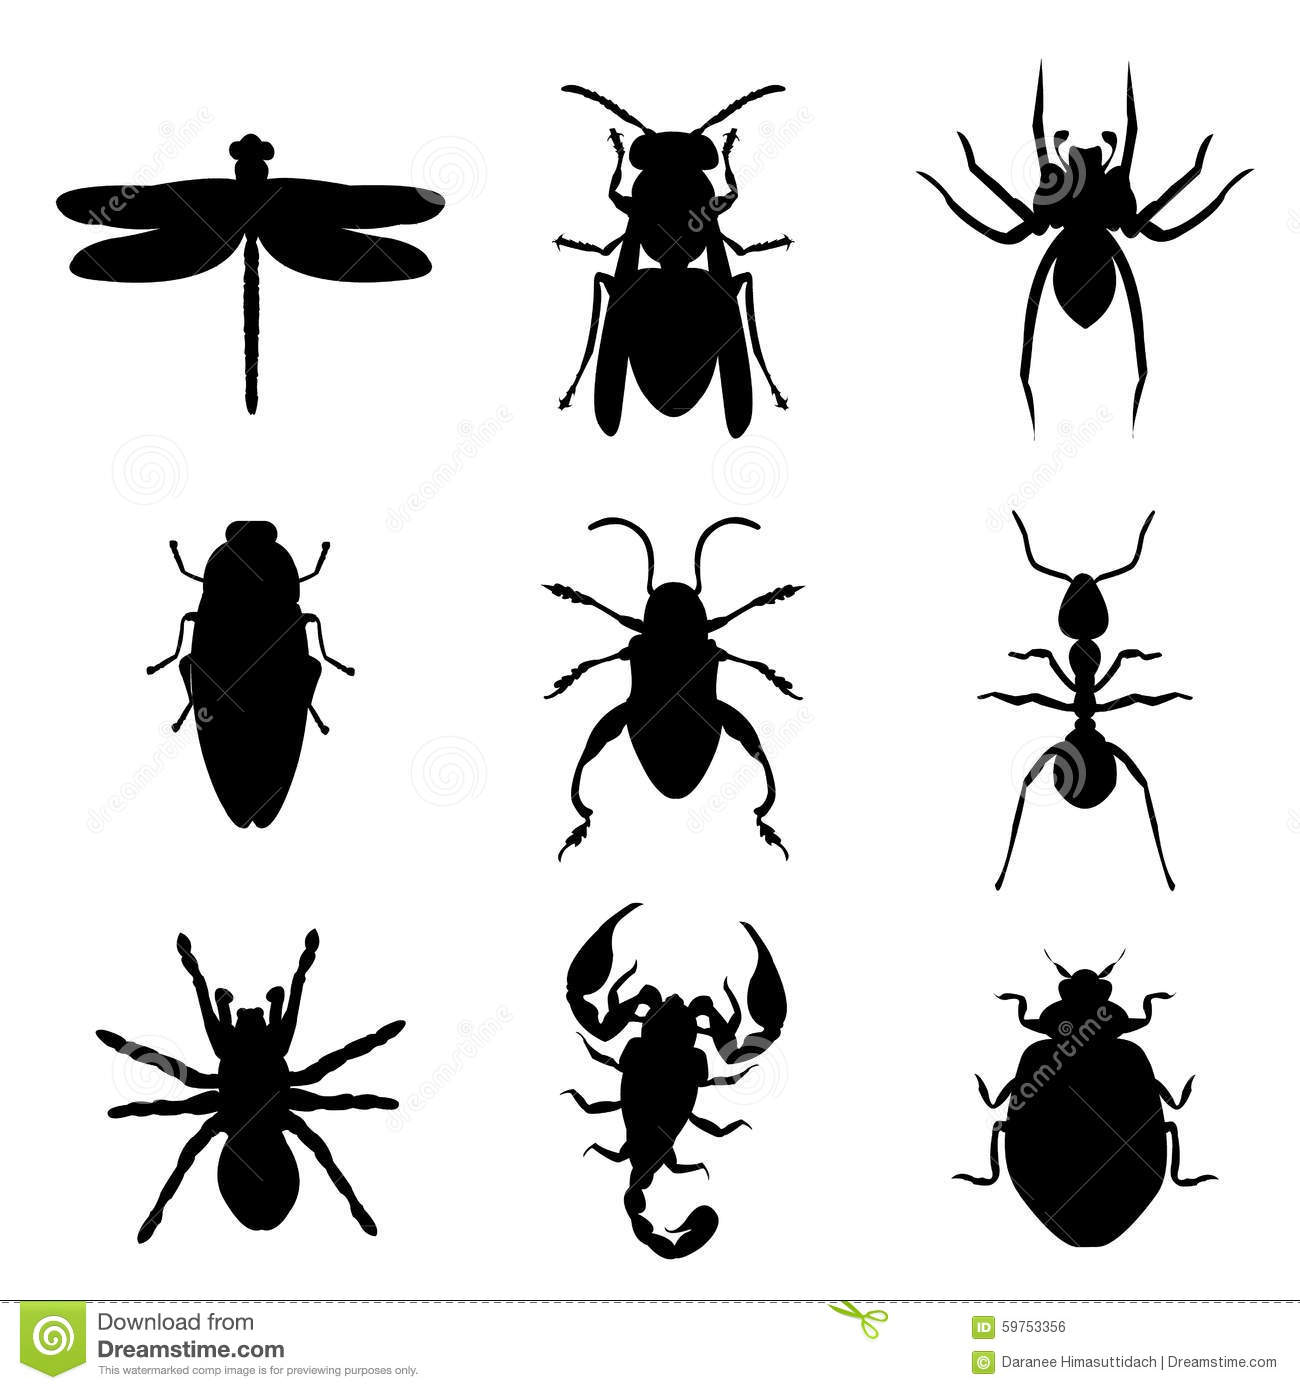 Insect bug animal silhouette icon black vector for Black and white only